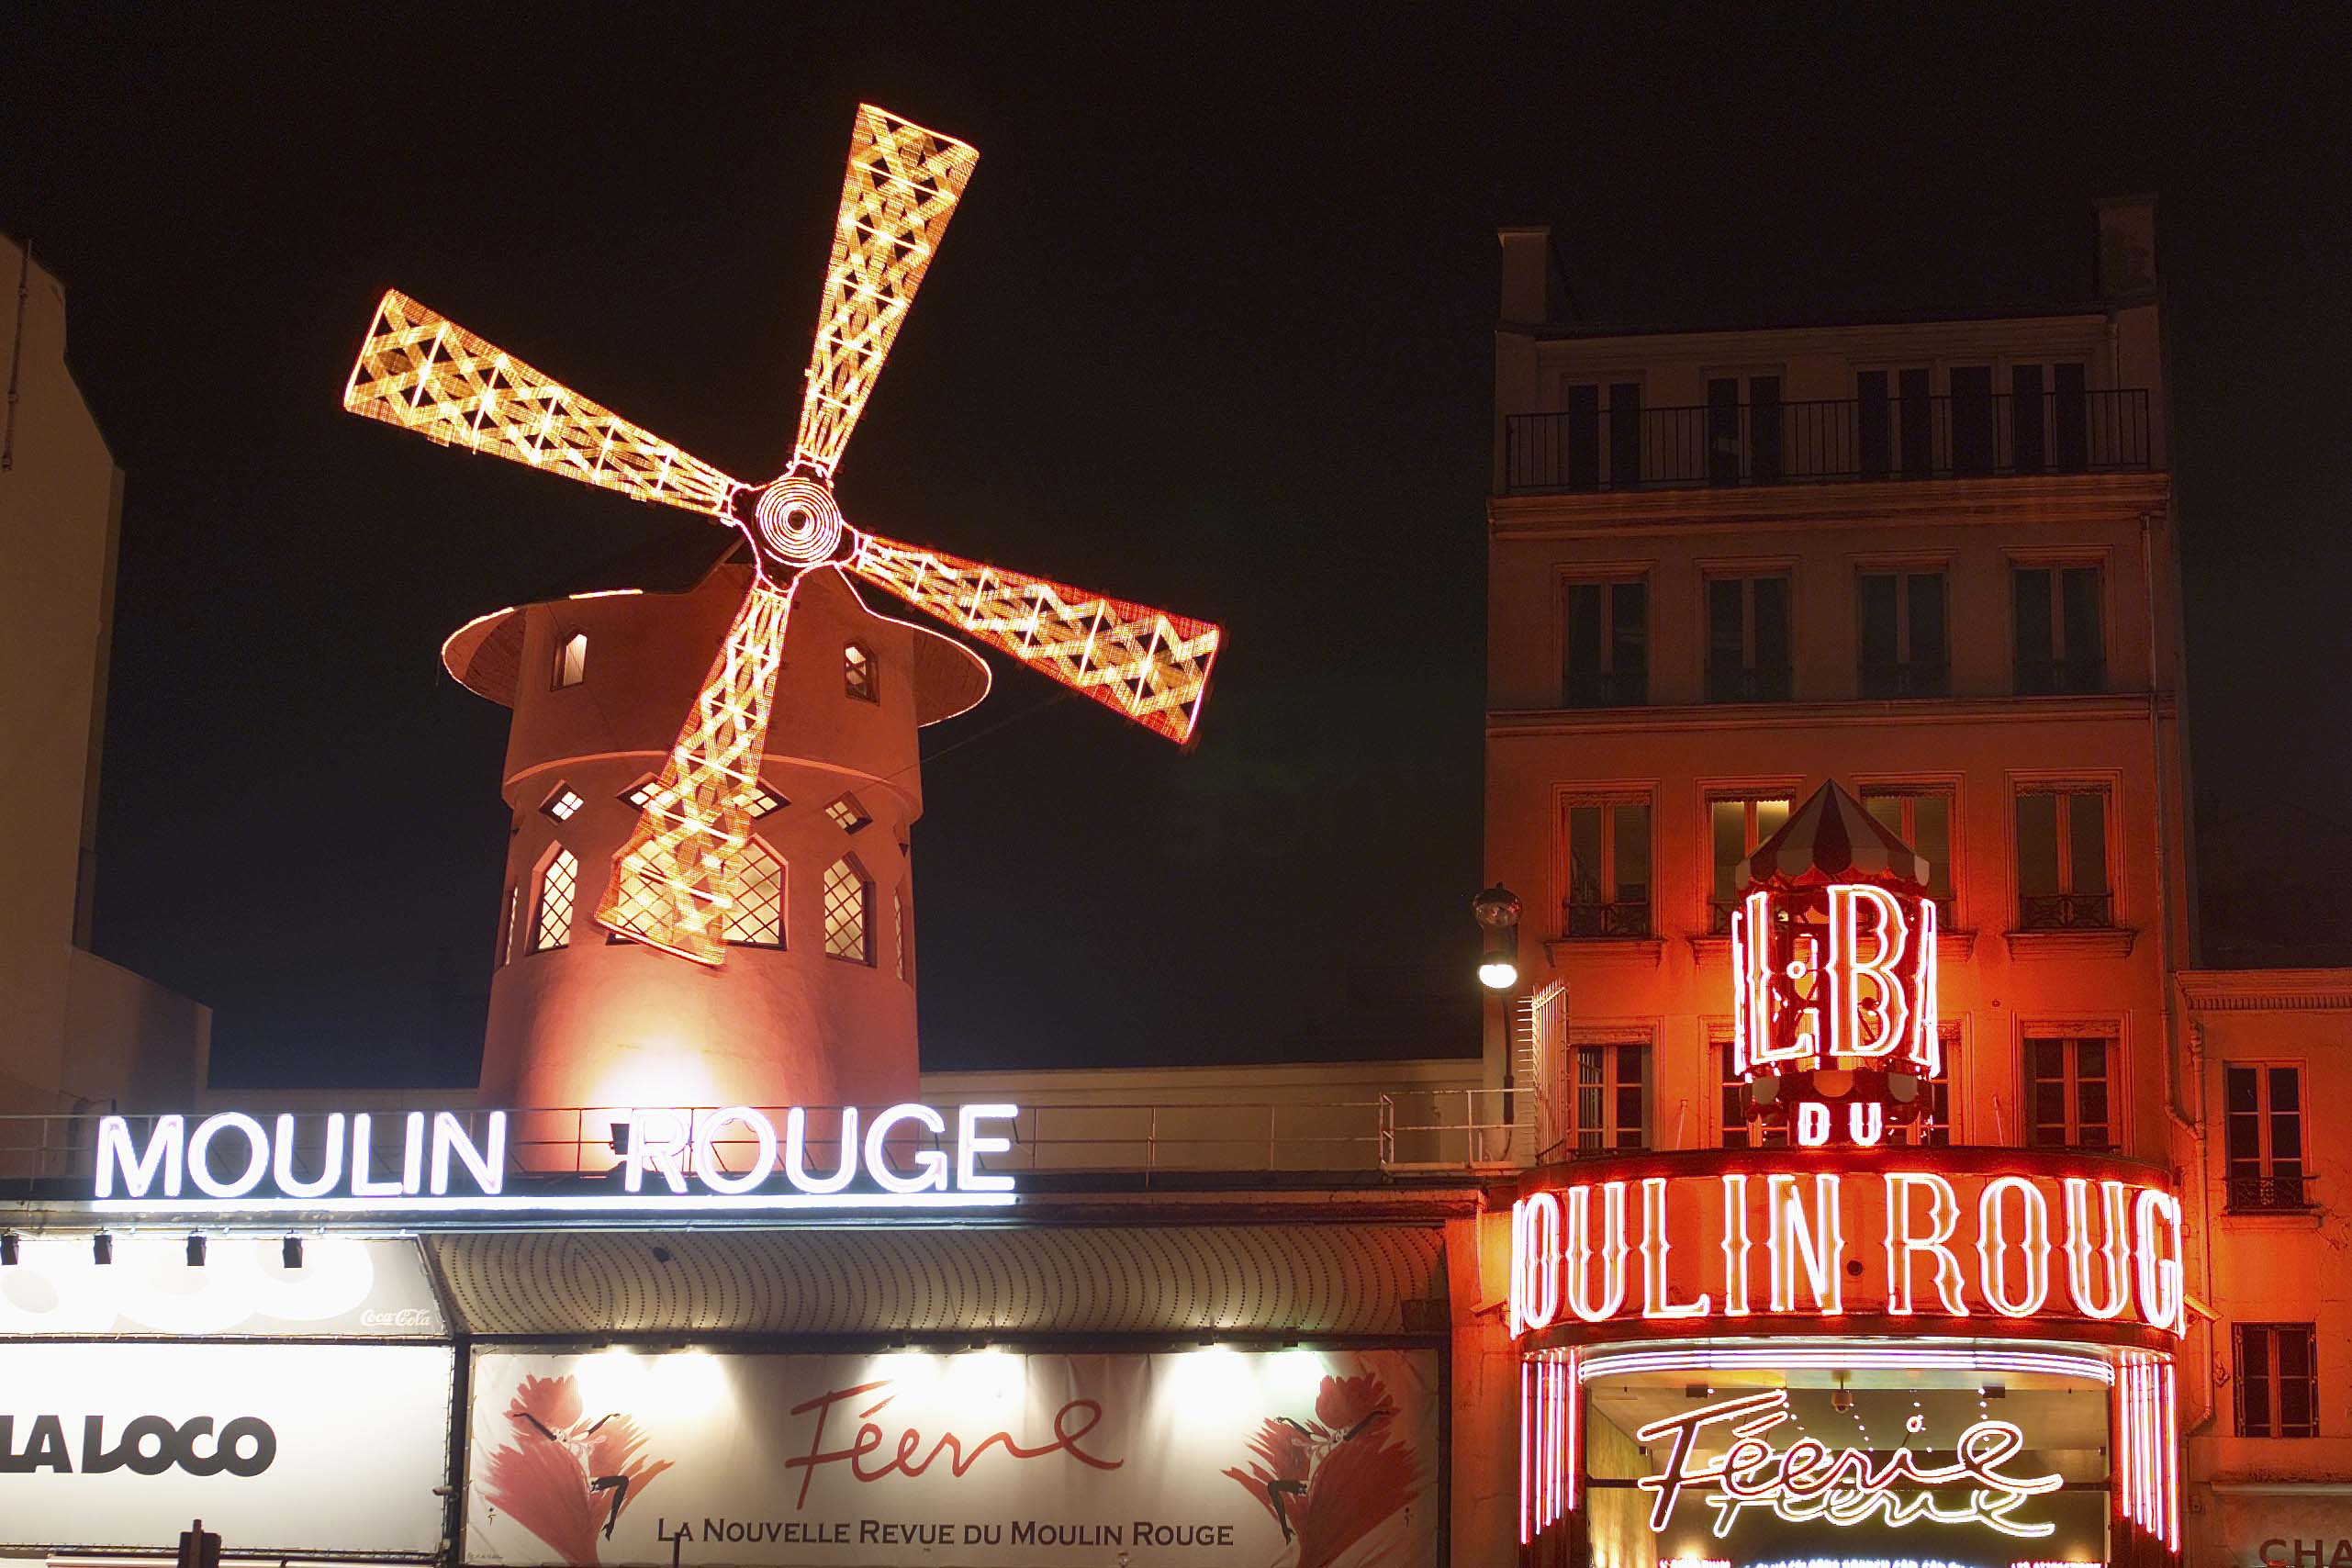 moulin rouge picture